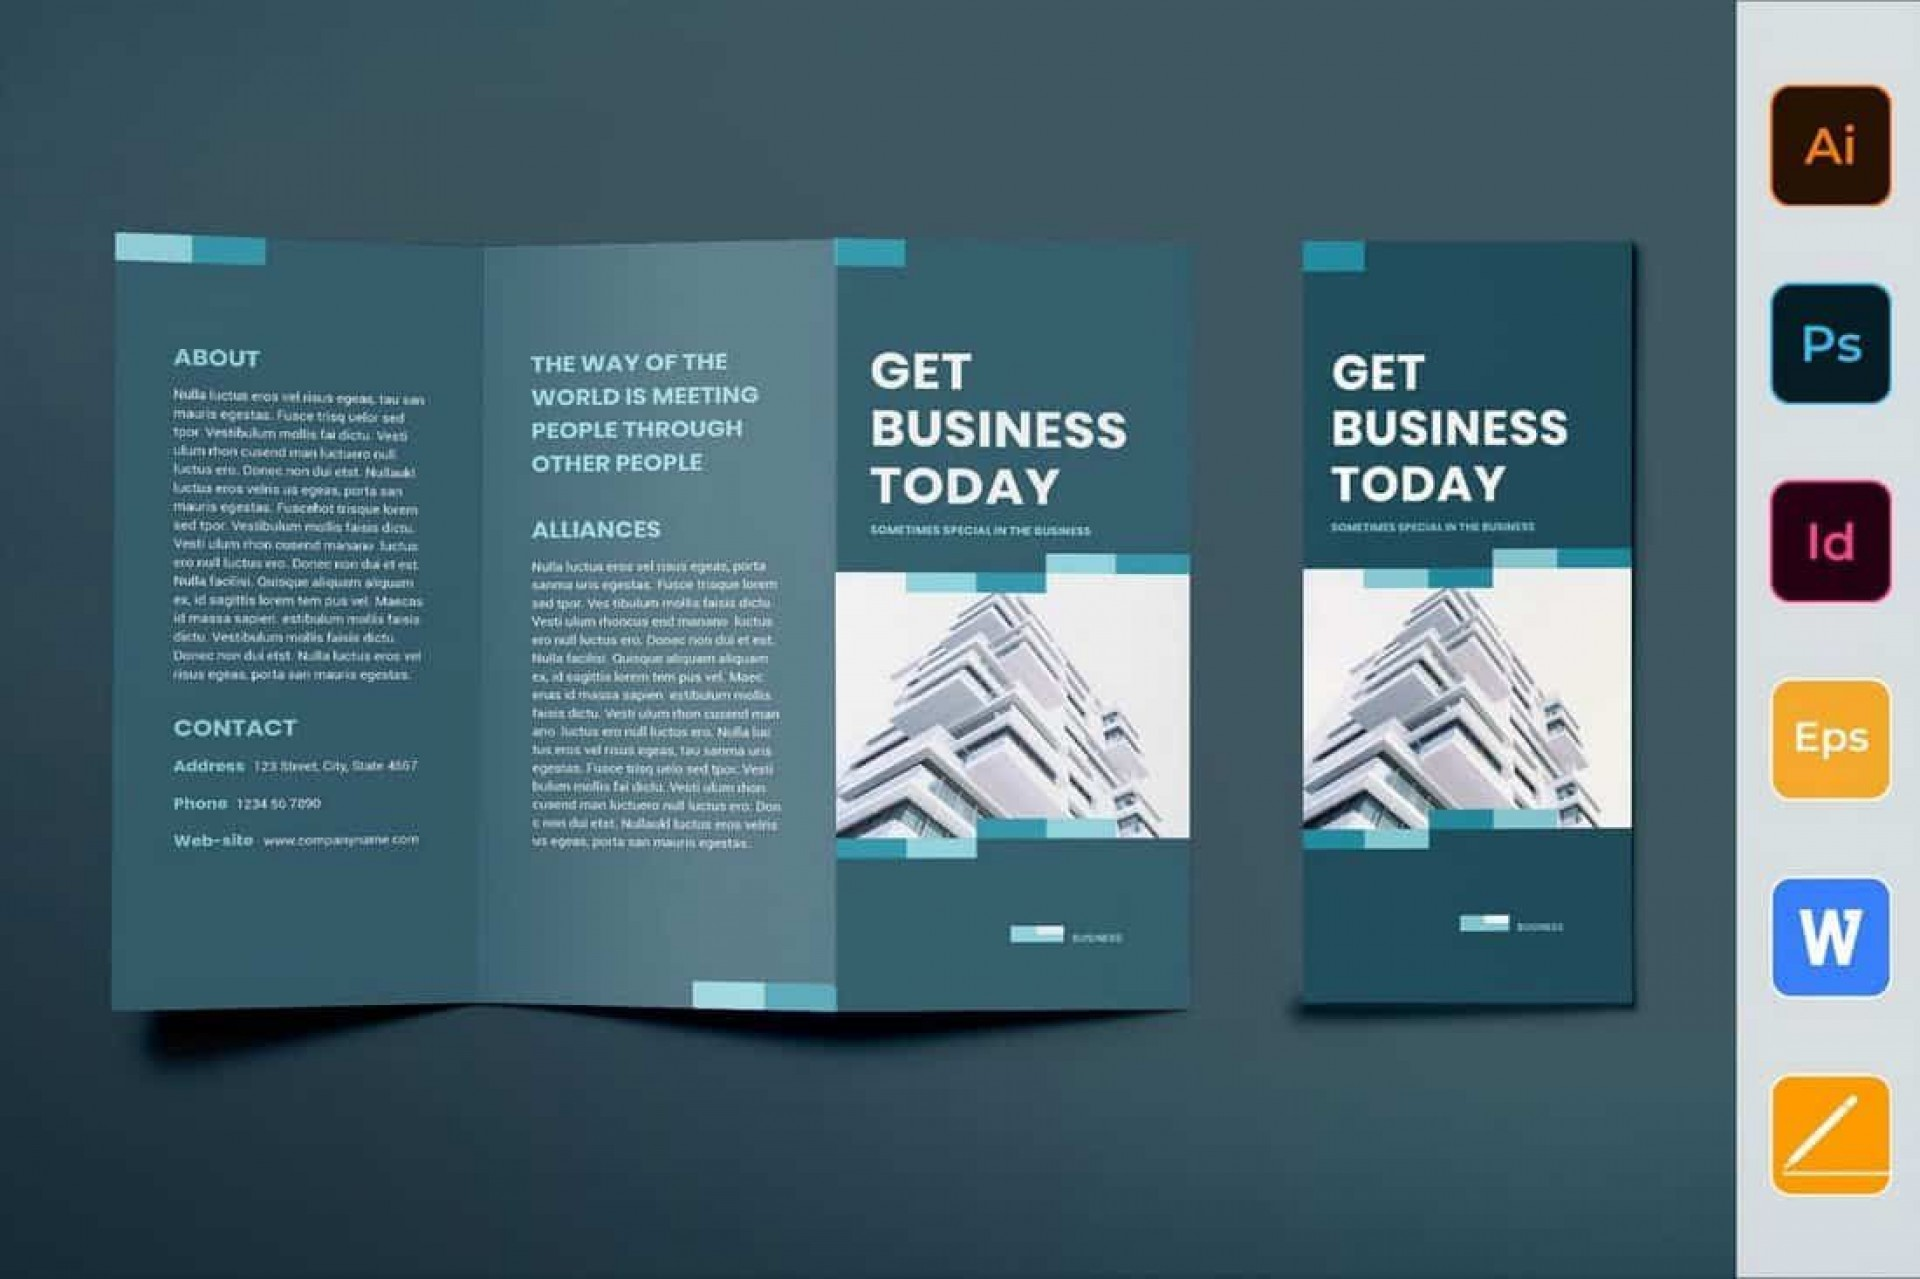 005 Magnificent M Word Tri Fold Brochure Template Image  Microsoft Free Download1920